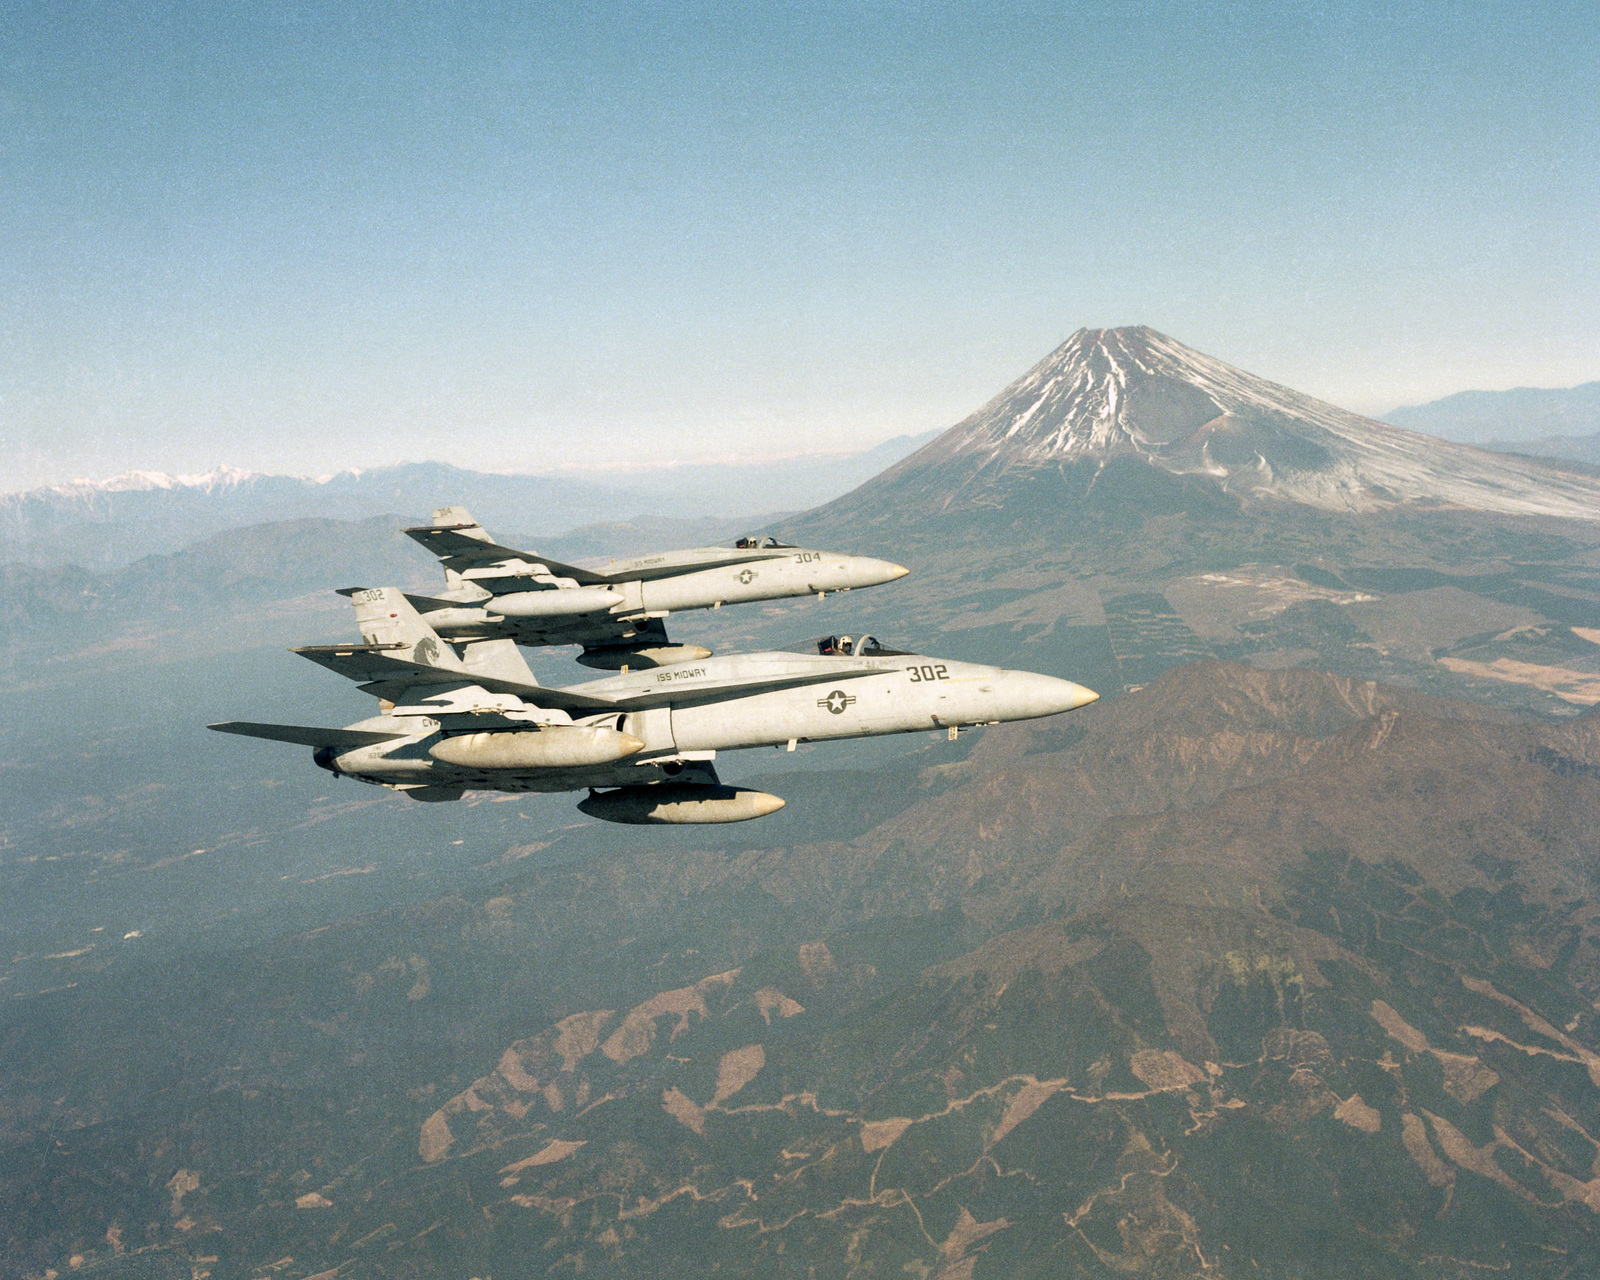 Two F/A-18A Hornet aircraft from Strike Fighter Squadron 192